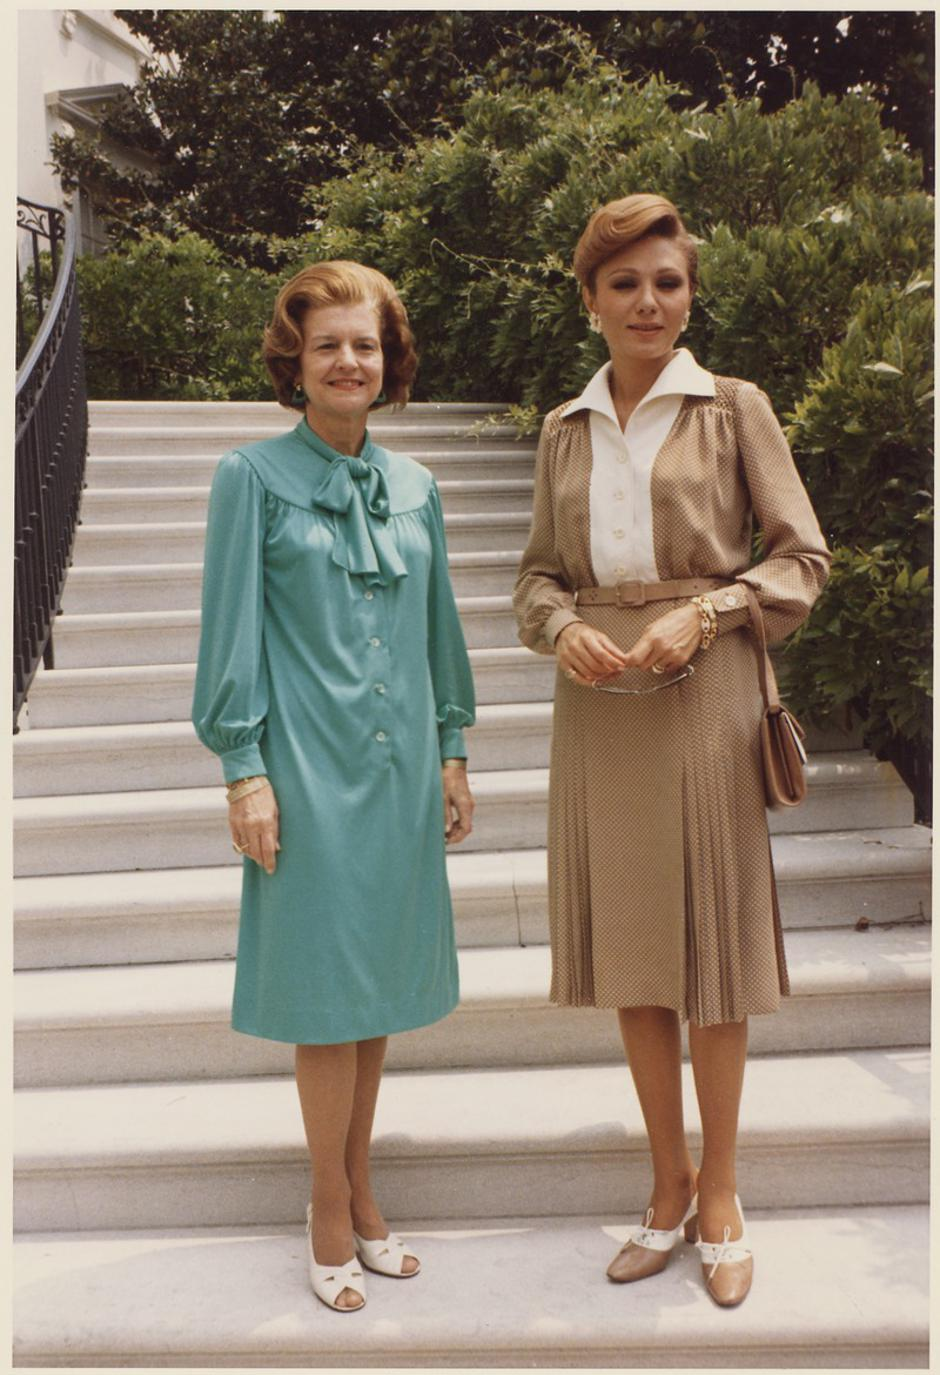 Farah Pahlavi i Betty Ford u SAD-u 1975. godine | Author: wikipedia